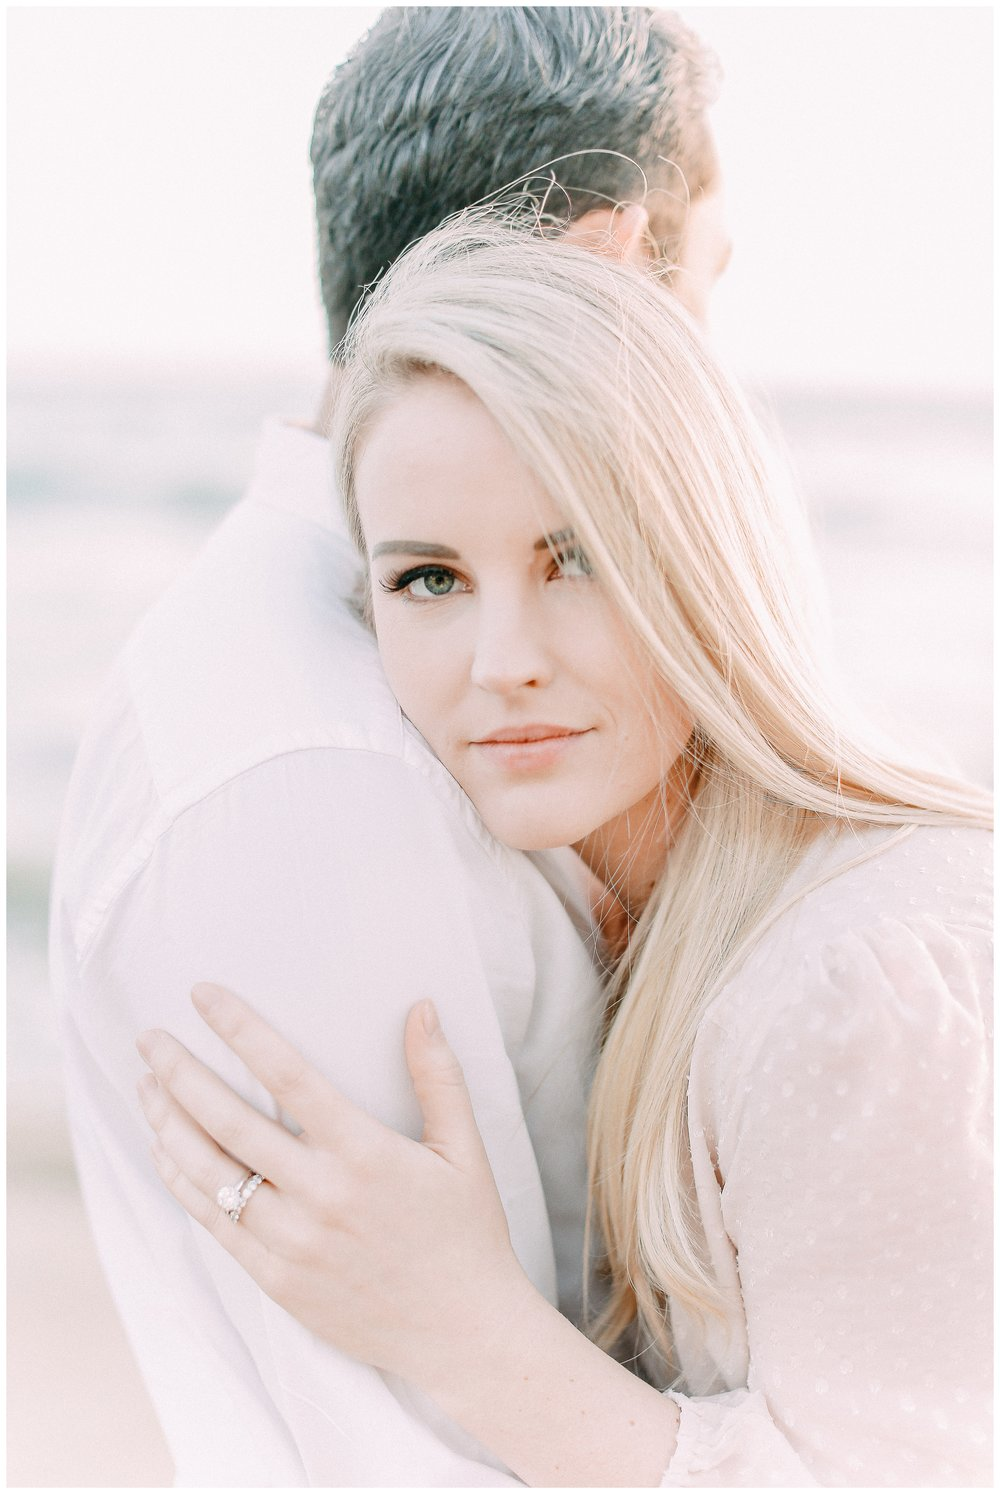 Little_Corona_Beach_Maternity_Session_Orange_county_family_photographer_cori_kleckner_photography_laguna_beach_family_session_0725.jpg